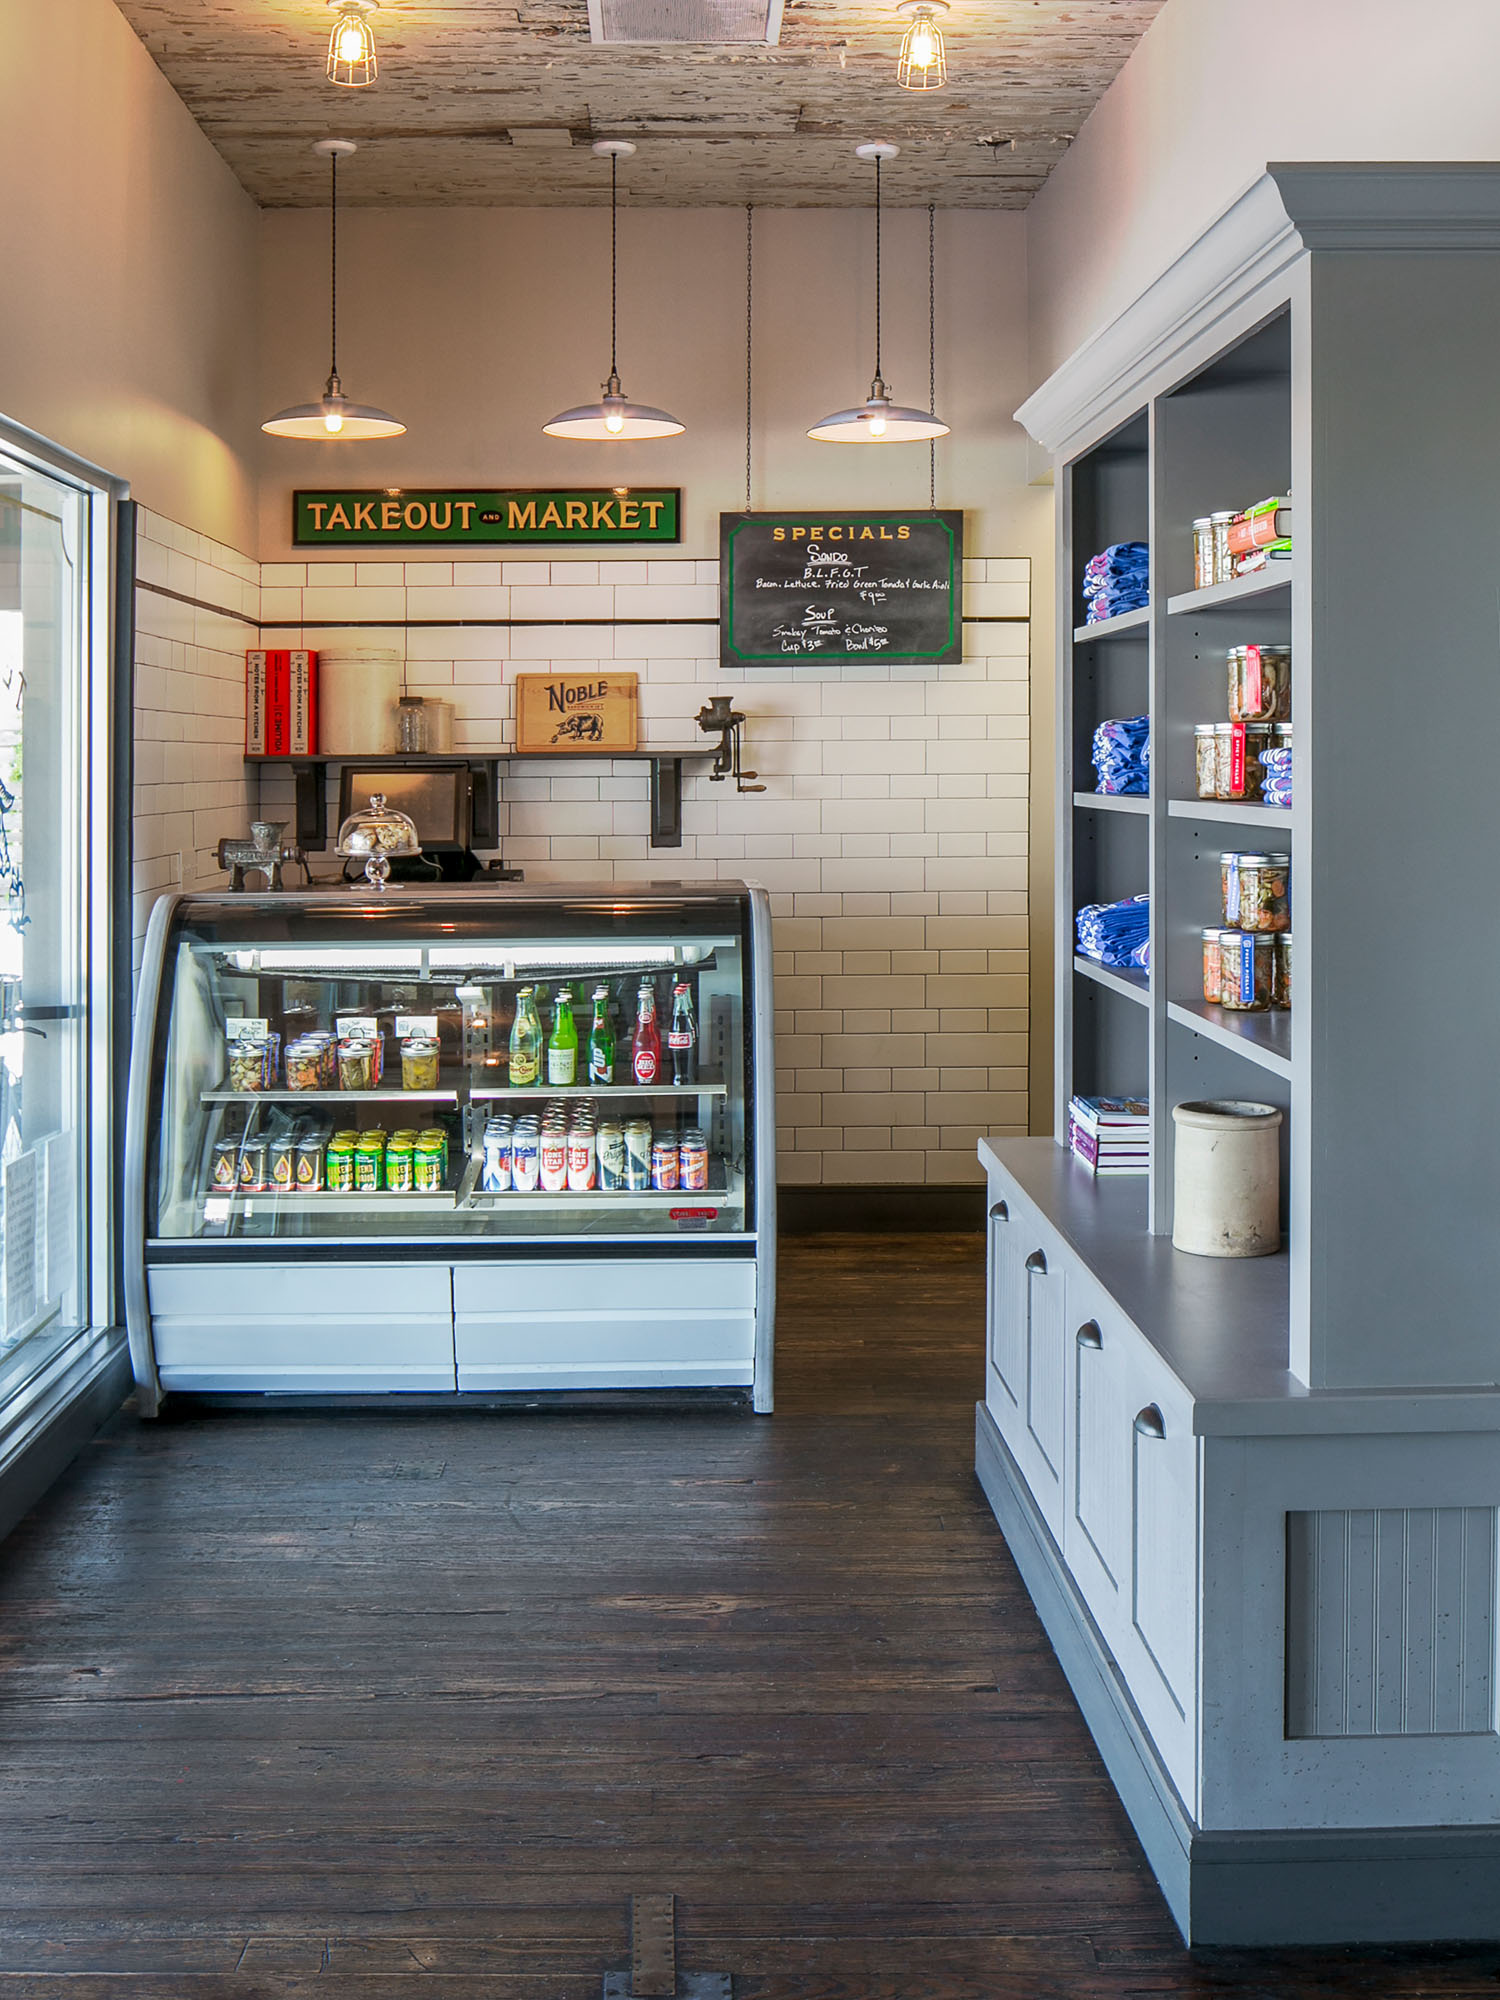 McCray & Co. - The Noble Sandwich Co. - Entry Foyer